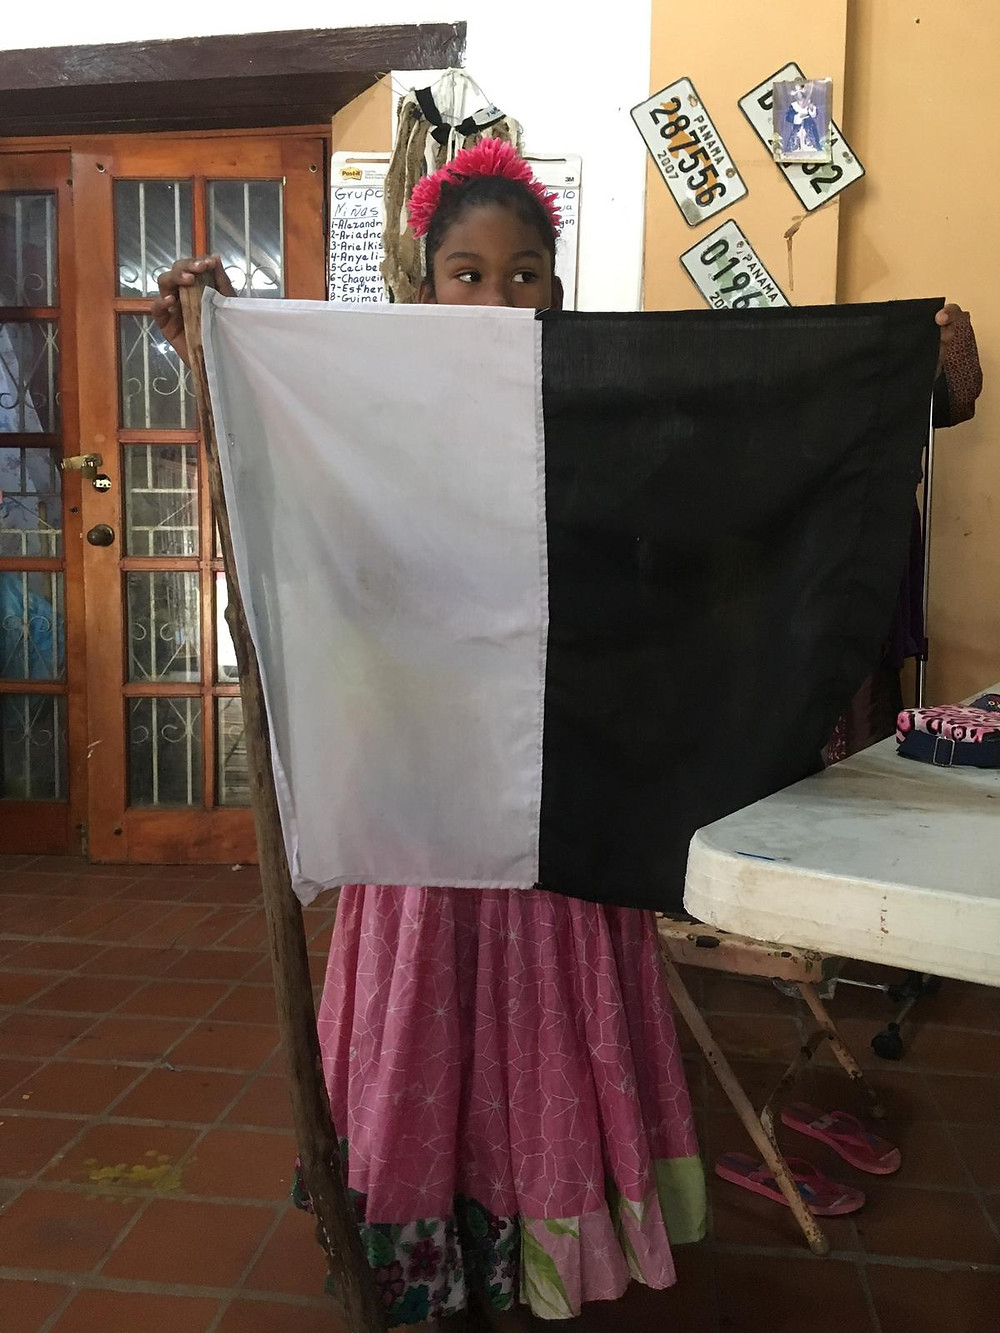 A flag one side white, one side black